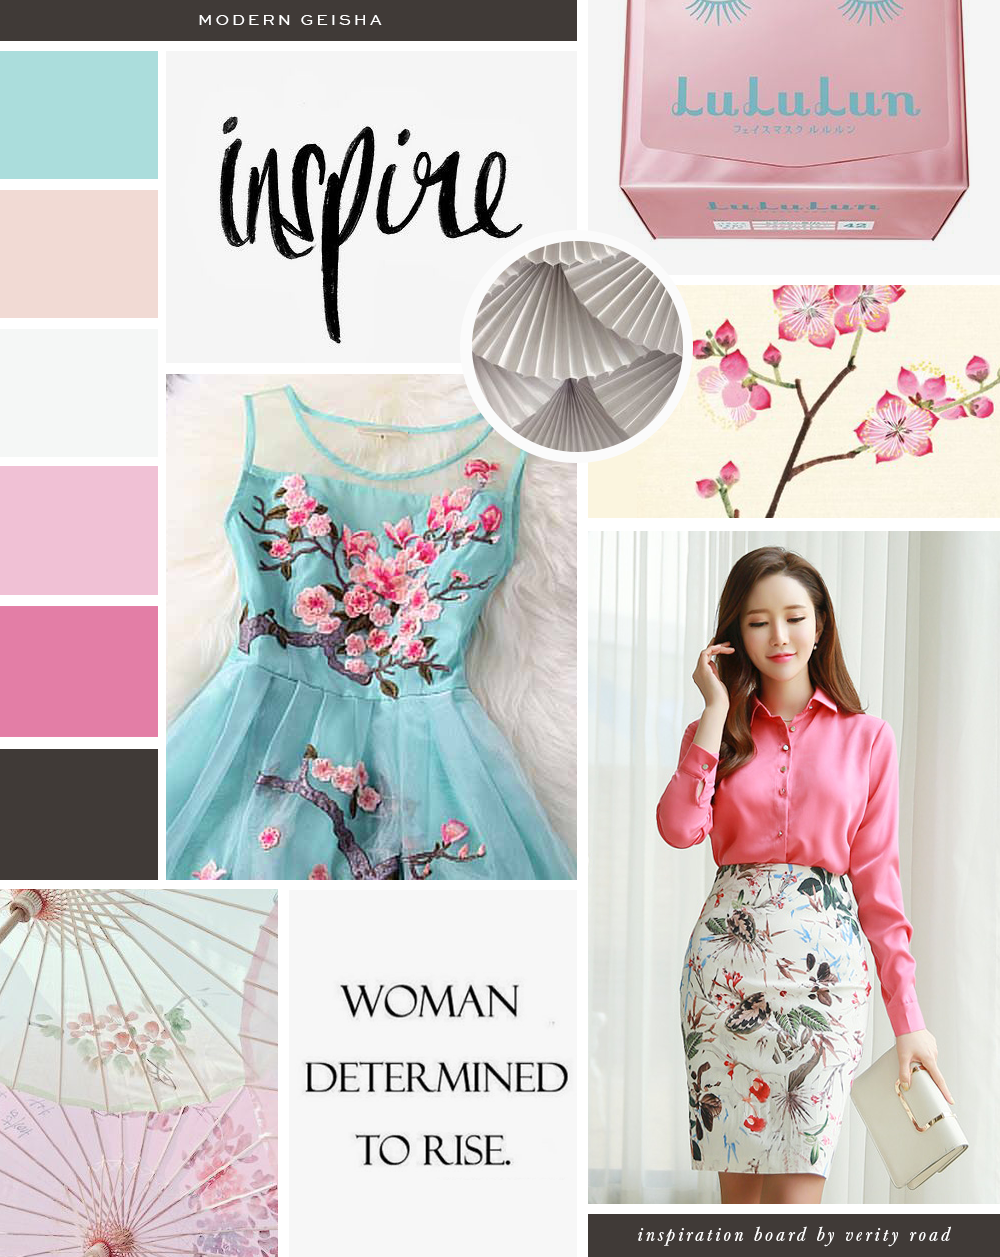 Mood board for modern geisha,  luxury feminine brand styling and web design for female entrepreneurs. Inspiration board of typography, brush script font, serif, brown, pink, blush, tiffany blue color palette,  japanese fans, cherry blossom flowers, femininity, FLORAL pattern, business owner, blogger. See more for brand board, brand style guide, web design, social media branding.